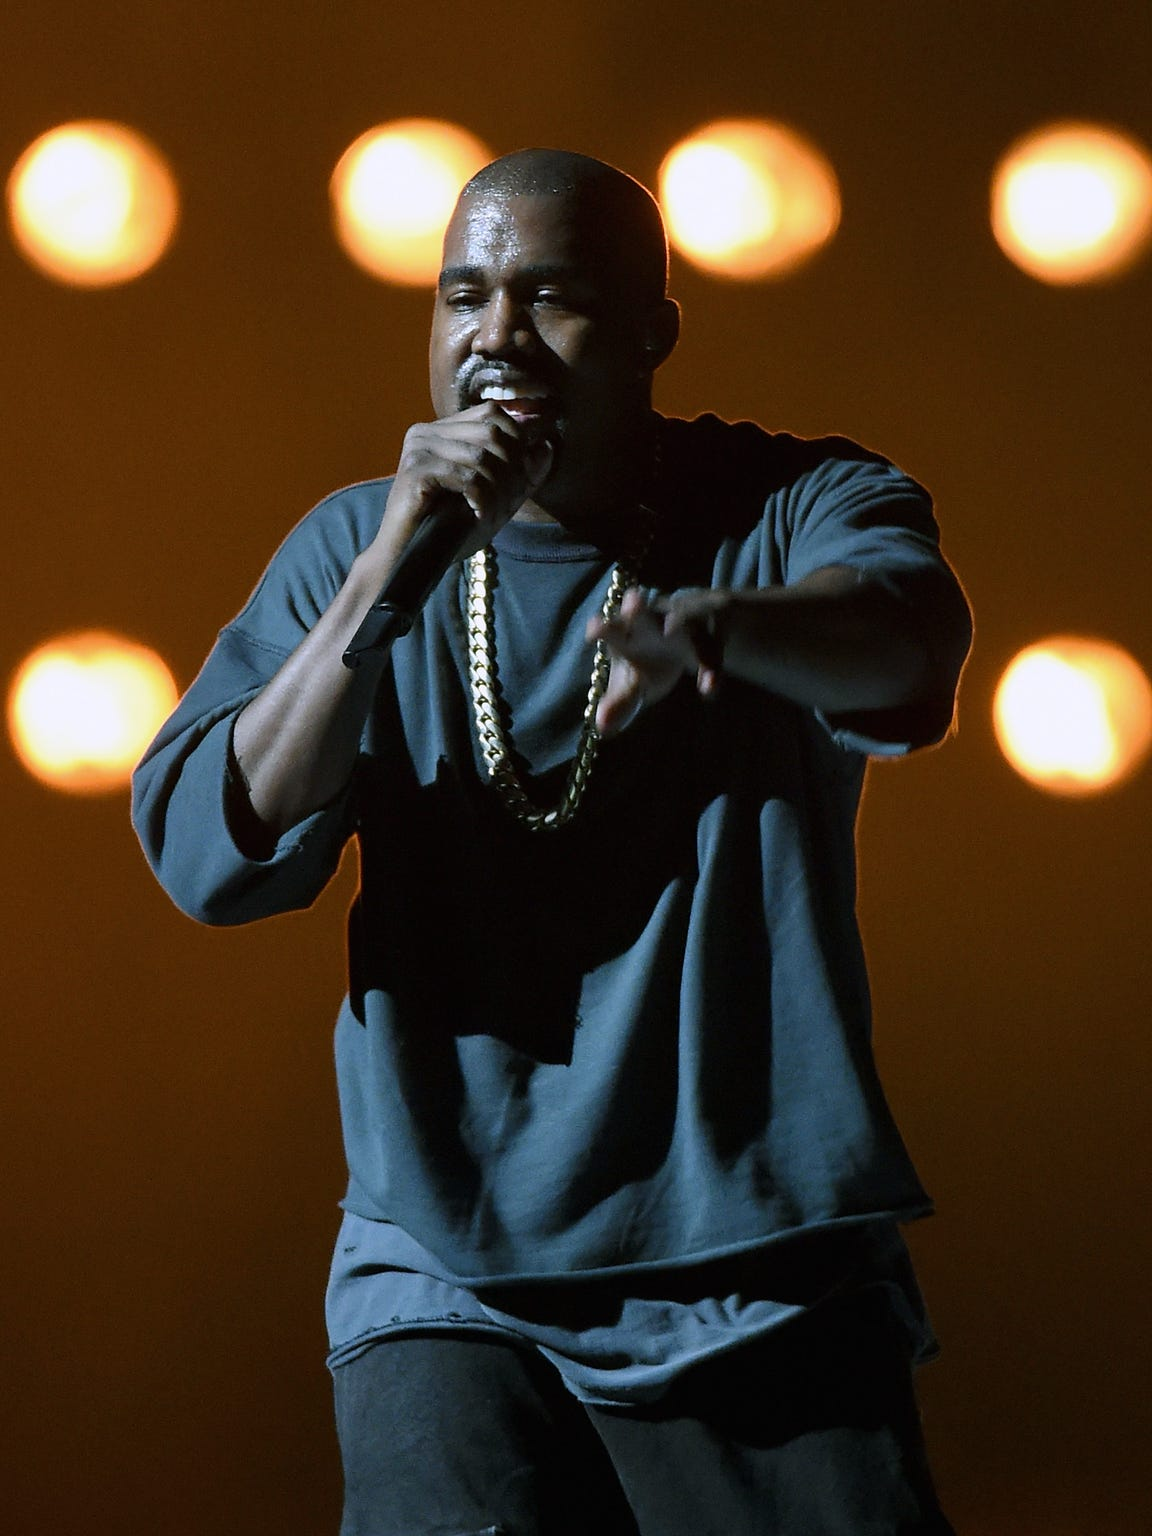 Rapper Kanye West performs at the 2015 iHeartRadio